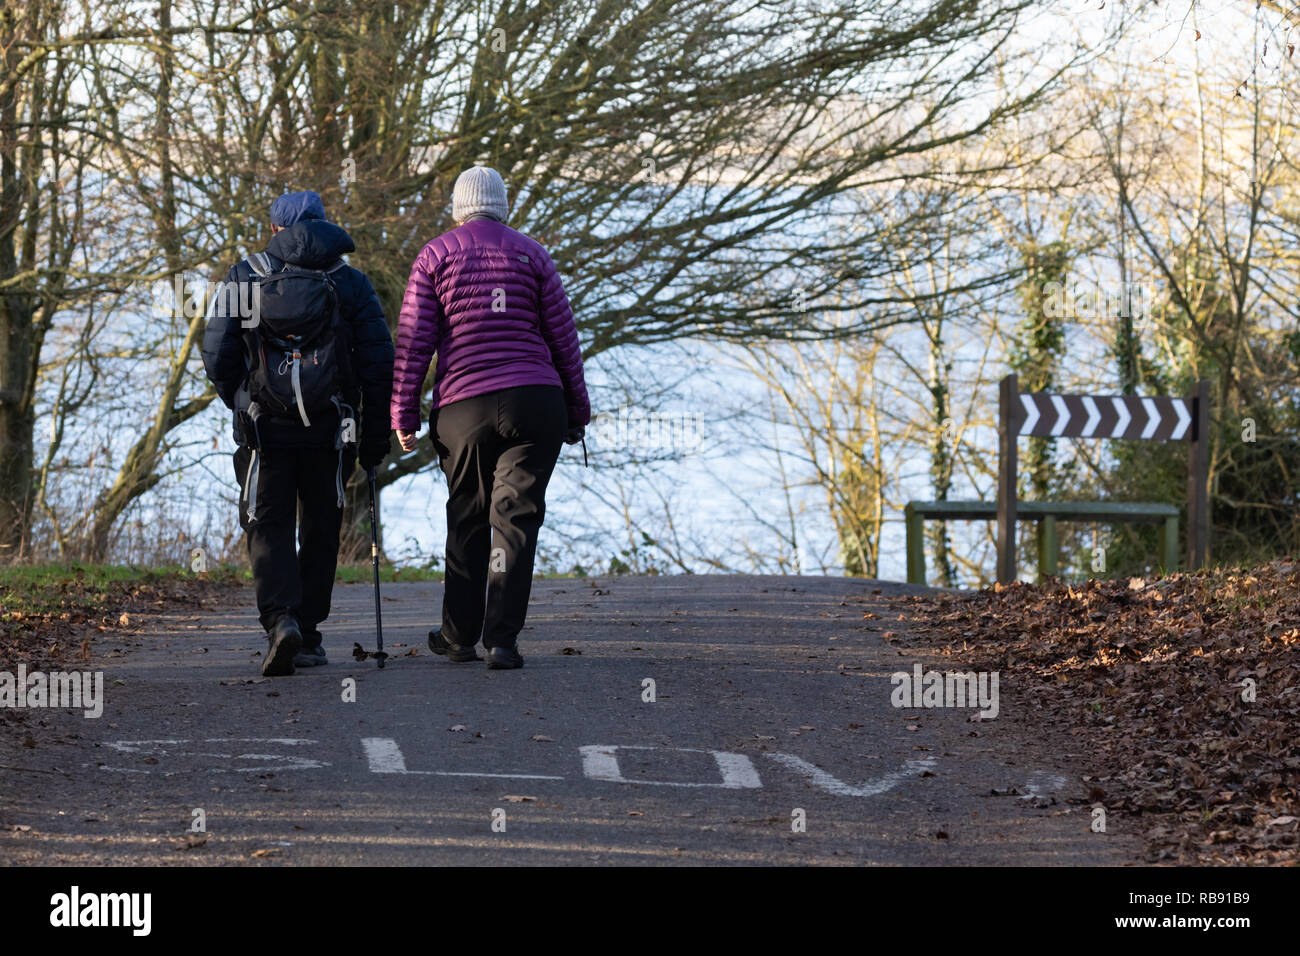 Draycote, Warwickshire / UK - January 2019: A man and woman, their backs to the camera, walk along a road on which the word 'Slow' is painted. Stock Photo